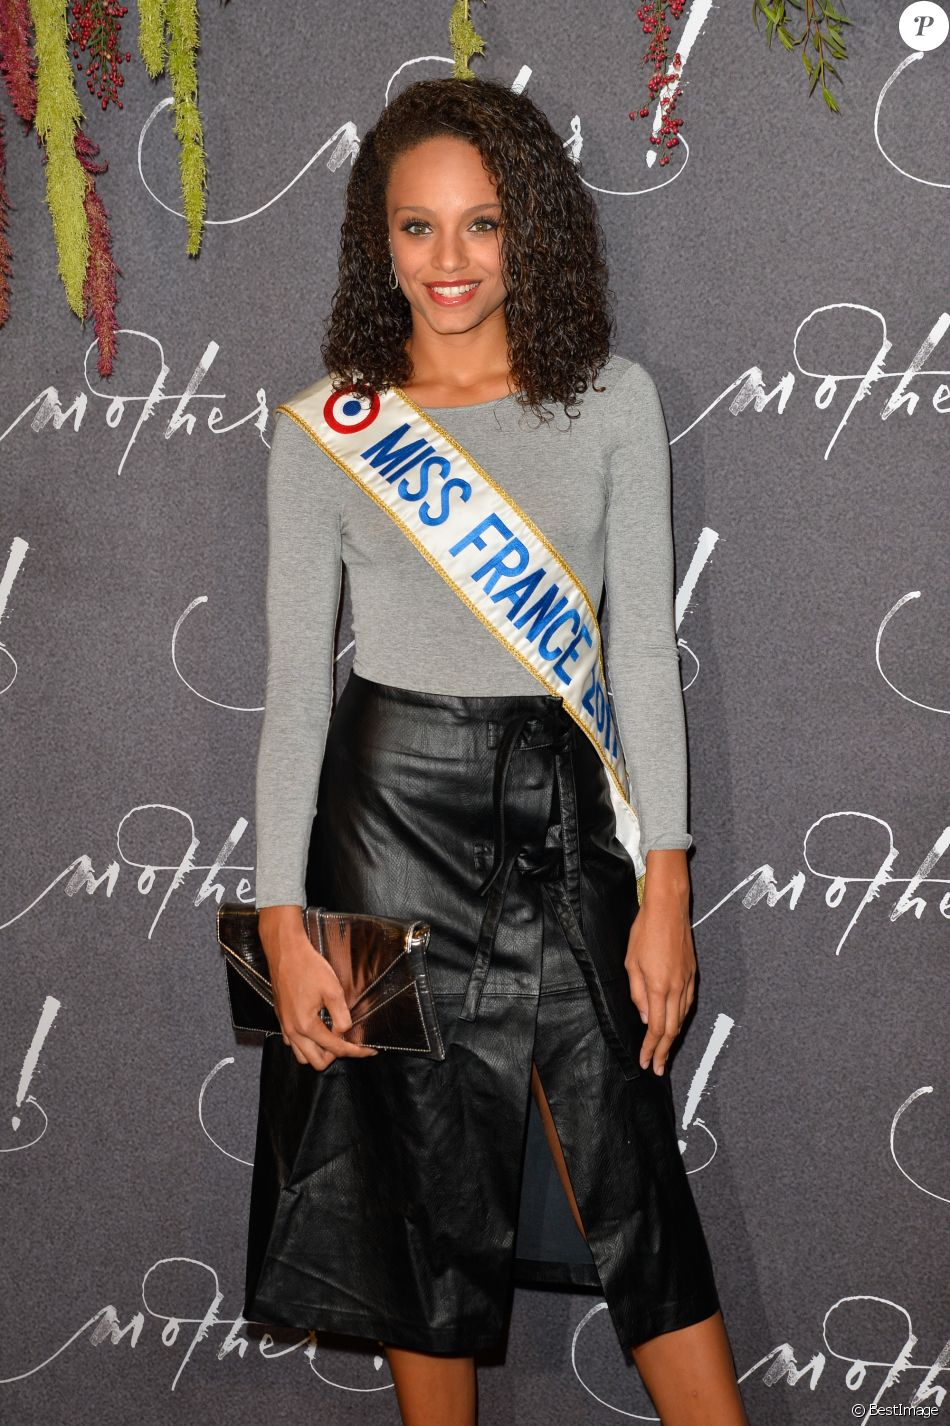 "Alicia Aylies (Miss France 2017) - Avant-première du film ""Mother!"" au cinéma UGC Normandie à Paris, France, le 7 septembre 2017. © Coadic Guirec/Bestimage"